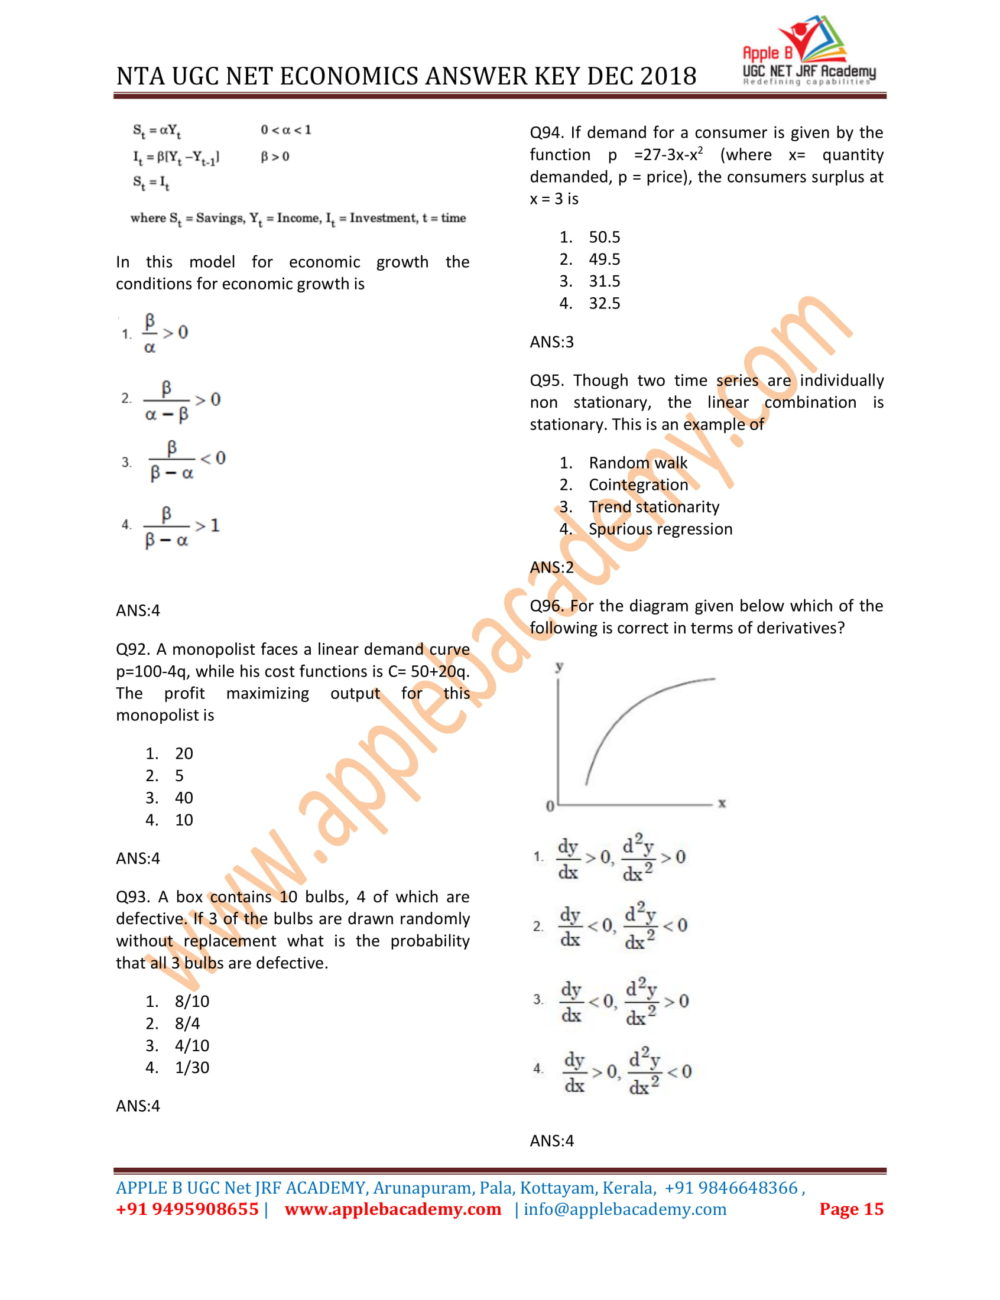 UGC-NET-ECONOMICS-ANSWER-KEY-DECEMBER-2018-(15)